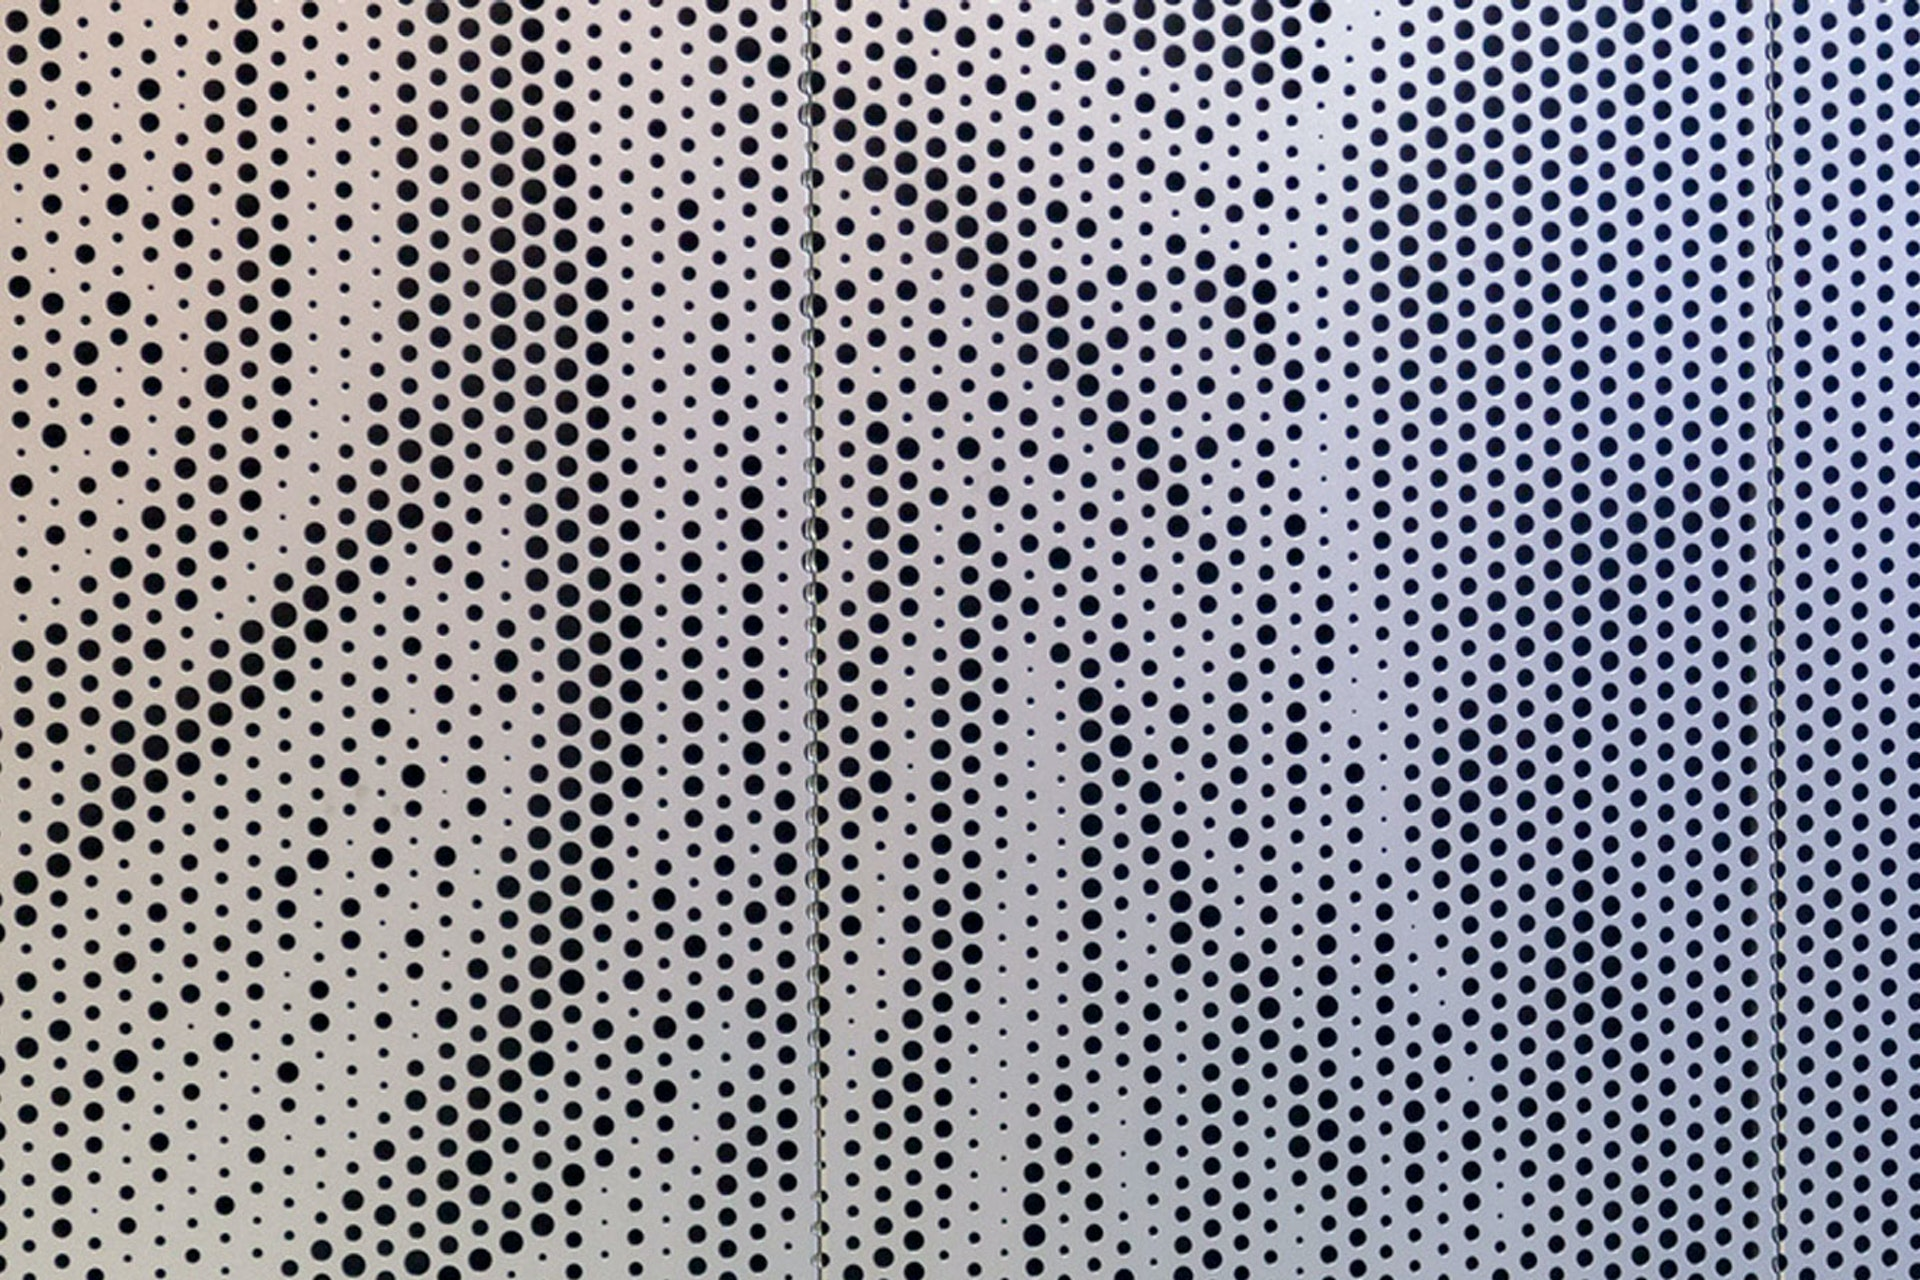 Perforated Metal Zahner